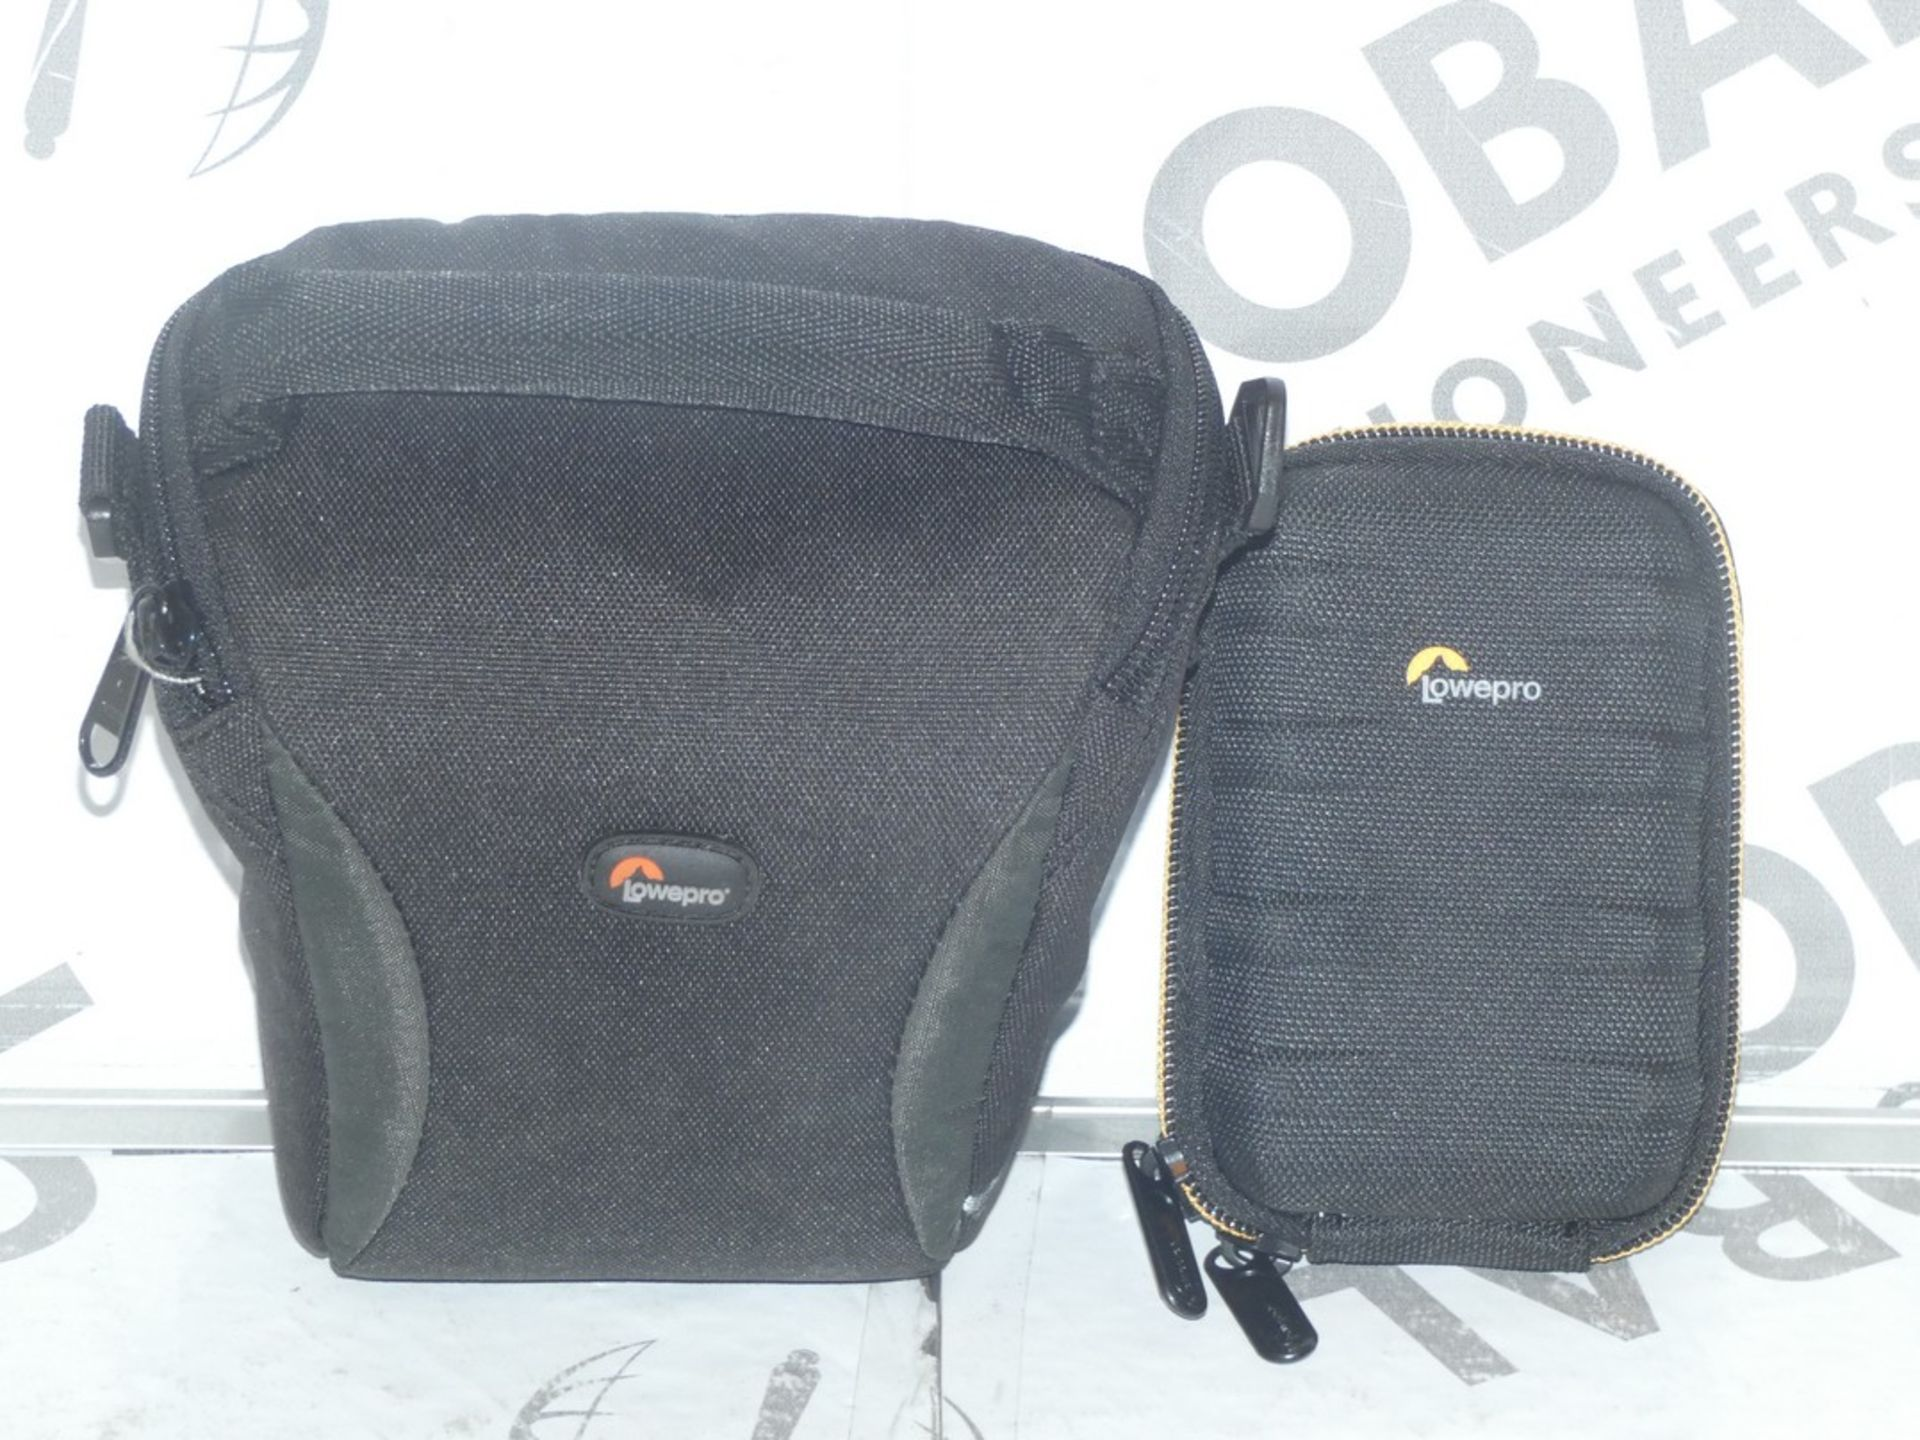 Lot 51 - Lot to Contain 5 Lowepro Assorted Digital Camera Cases and Mini SLR Camera Accessory Cases